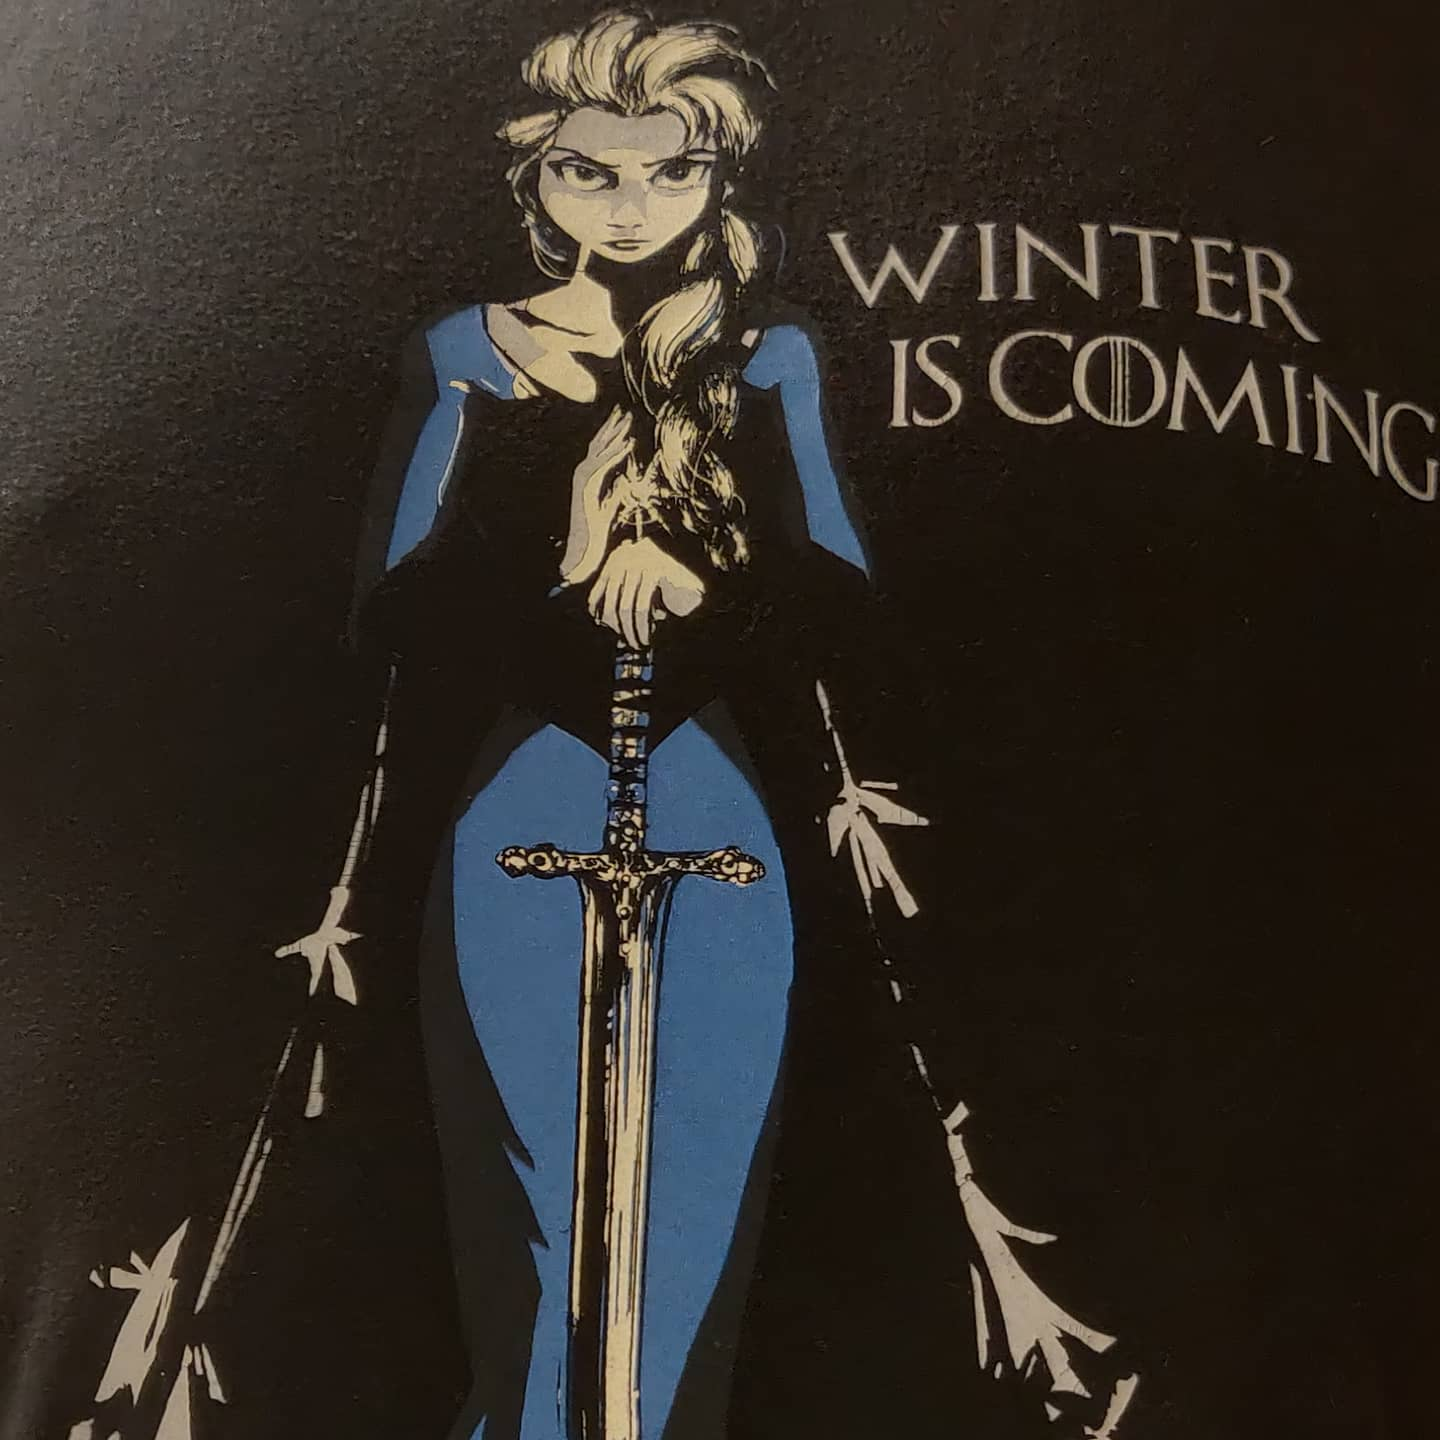 What we say to Elsa...NOT TODAY!#got #winteriscoming #winter #is #coming #Elsa #frozen #nerd #tshirt